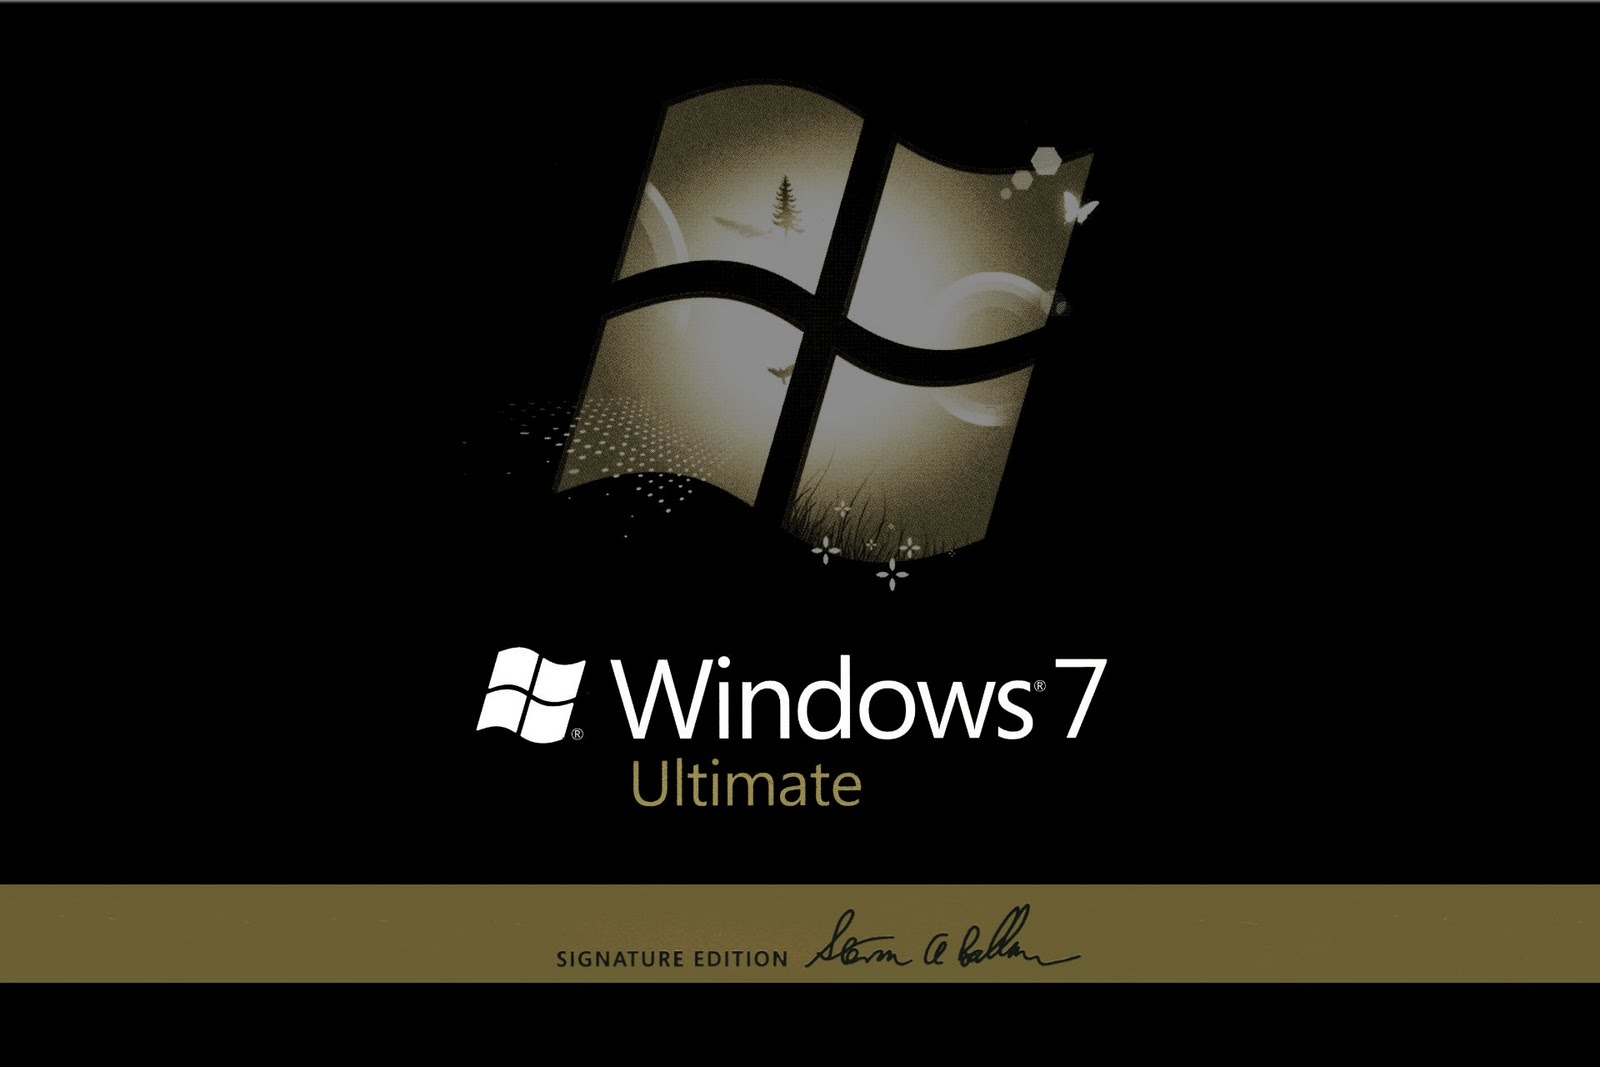 Windows Signature Wallpaper By C Debreak R as well Control Xbox Consola D Nq Np Mlv F further Nidhogg Pc B in addition Attendee Plays Kinect Sports Season Xbox Kinect During Electronic Entertainment Expo besides Mortal Kombat X Pc Download Free Full Version Crack X. on xbox controller windows 8